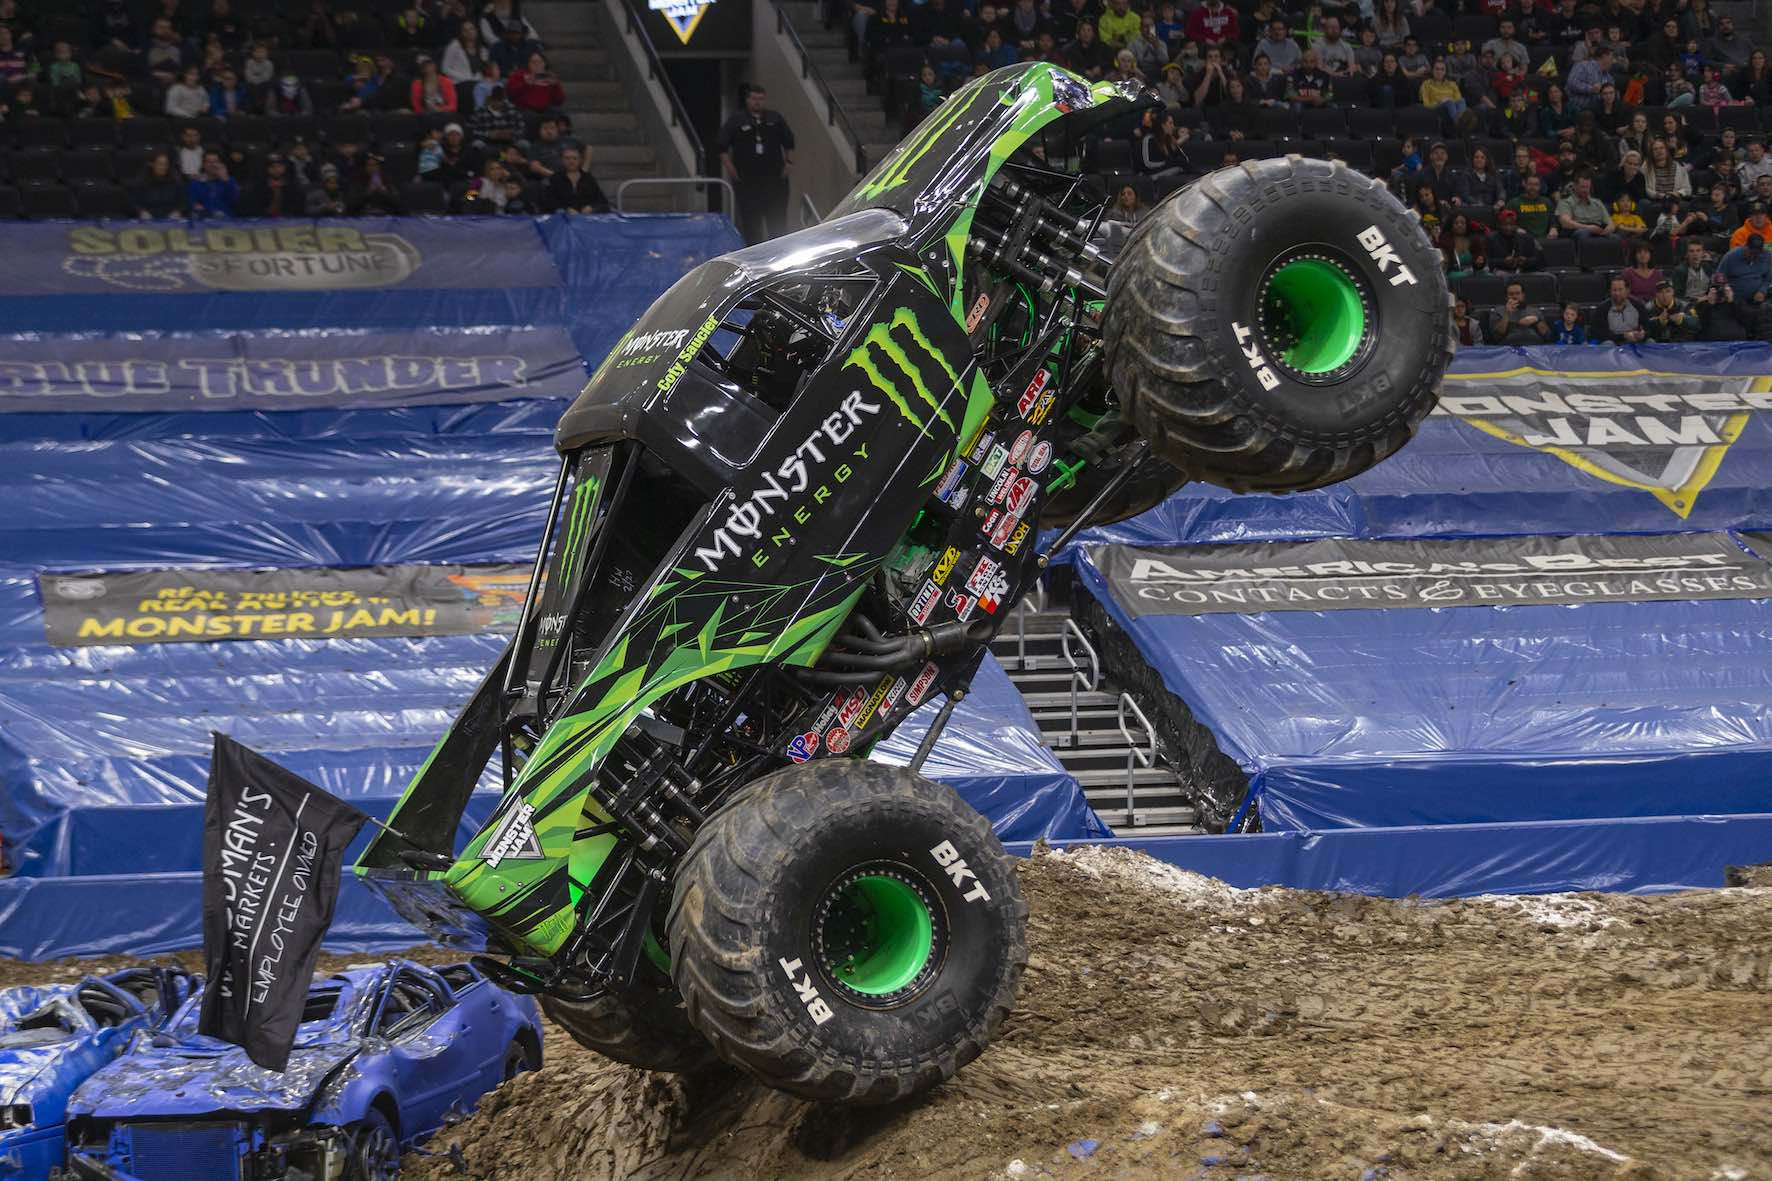 The Monster Energy Monster Truck is set to perform at Monster Jam in South Africa